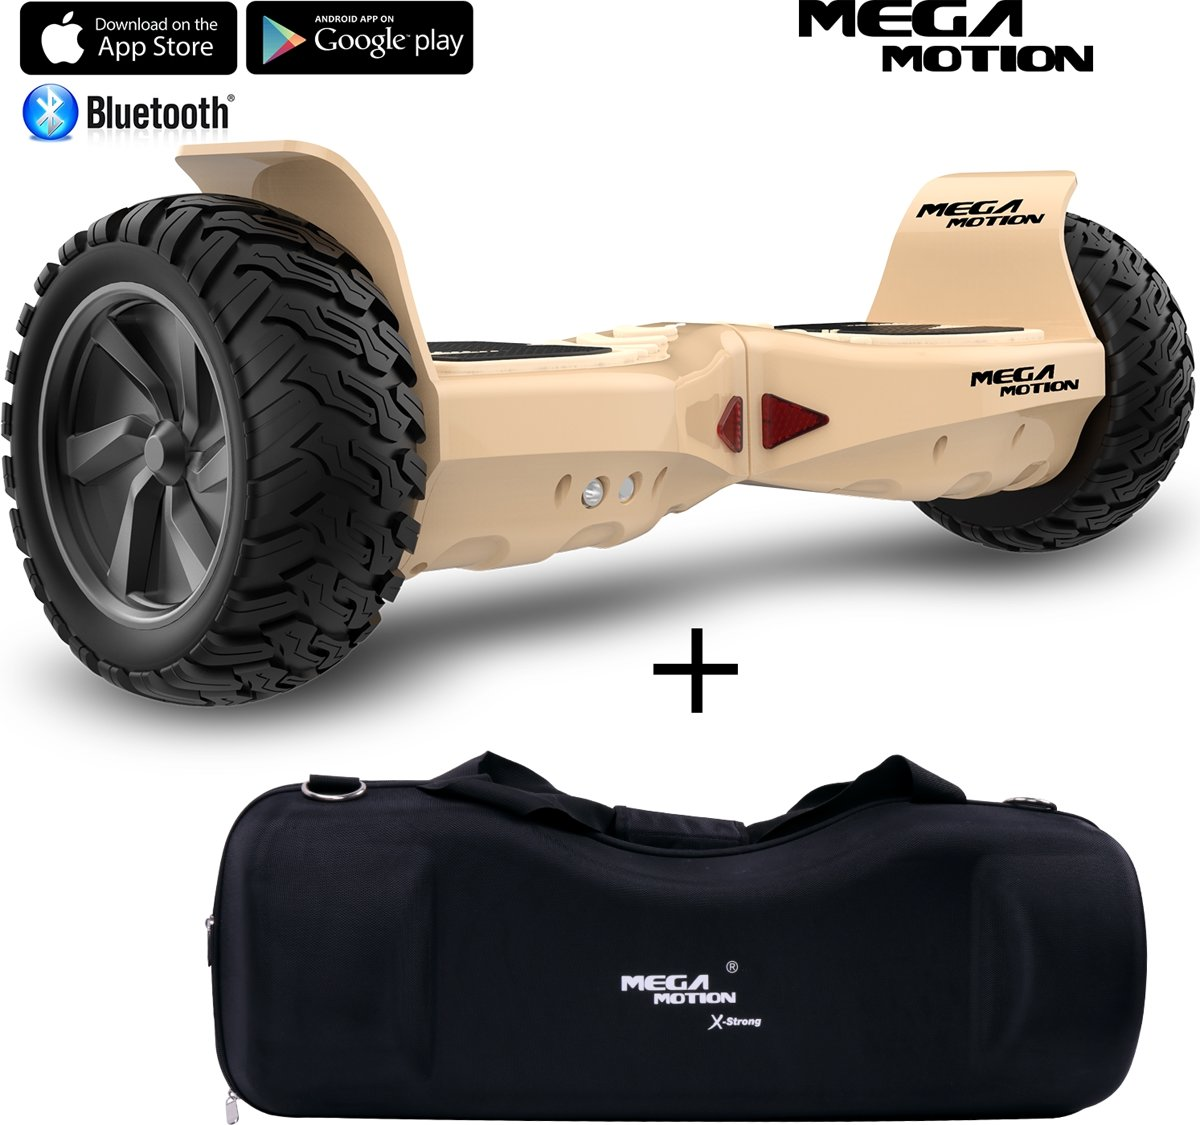 Mega Motion Hoverboard Hummer 8.5 inch SUV Hoverboard Goud + Draagbare waterdichte sporttas 8.5 inch